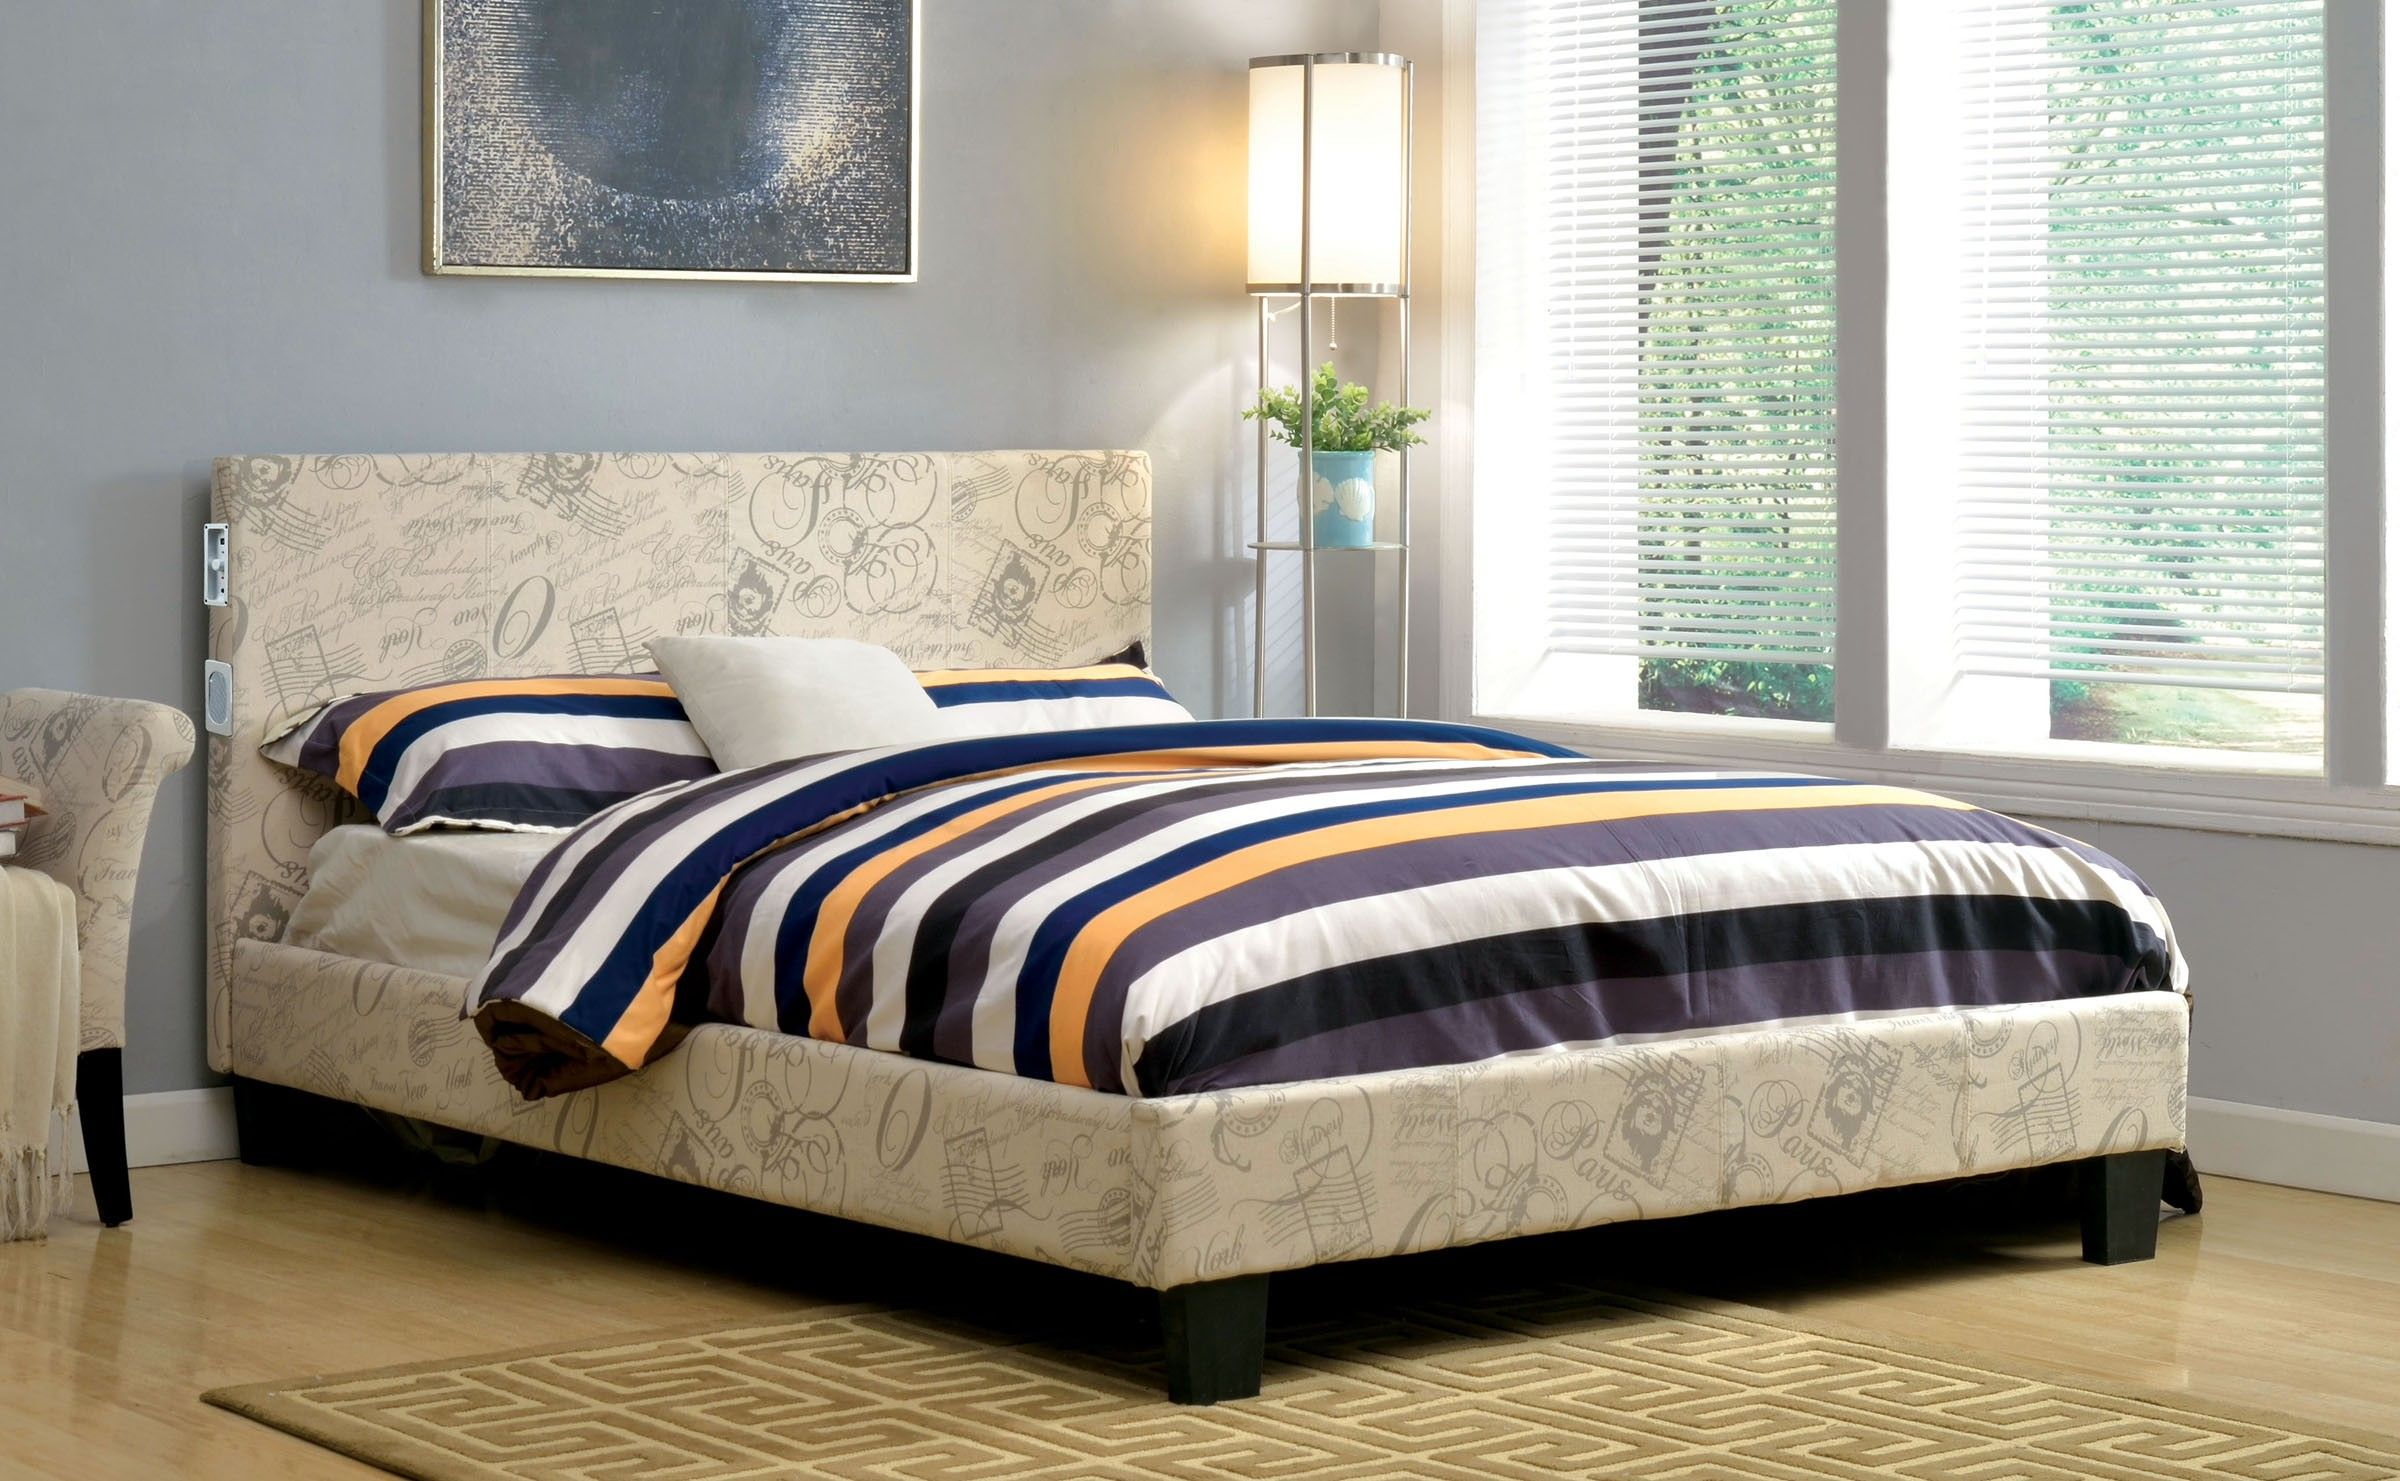 evans full bed youth beds pinterest full bed furniture